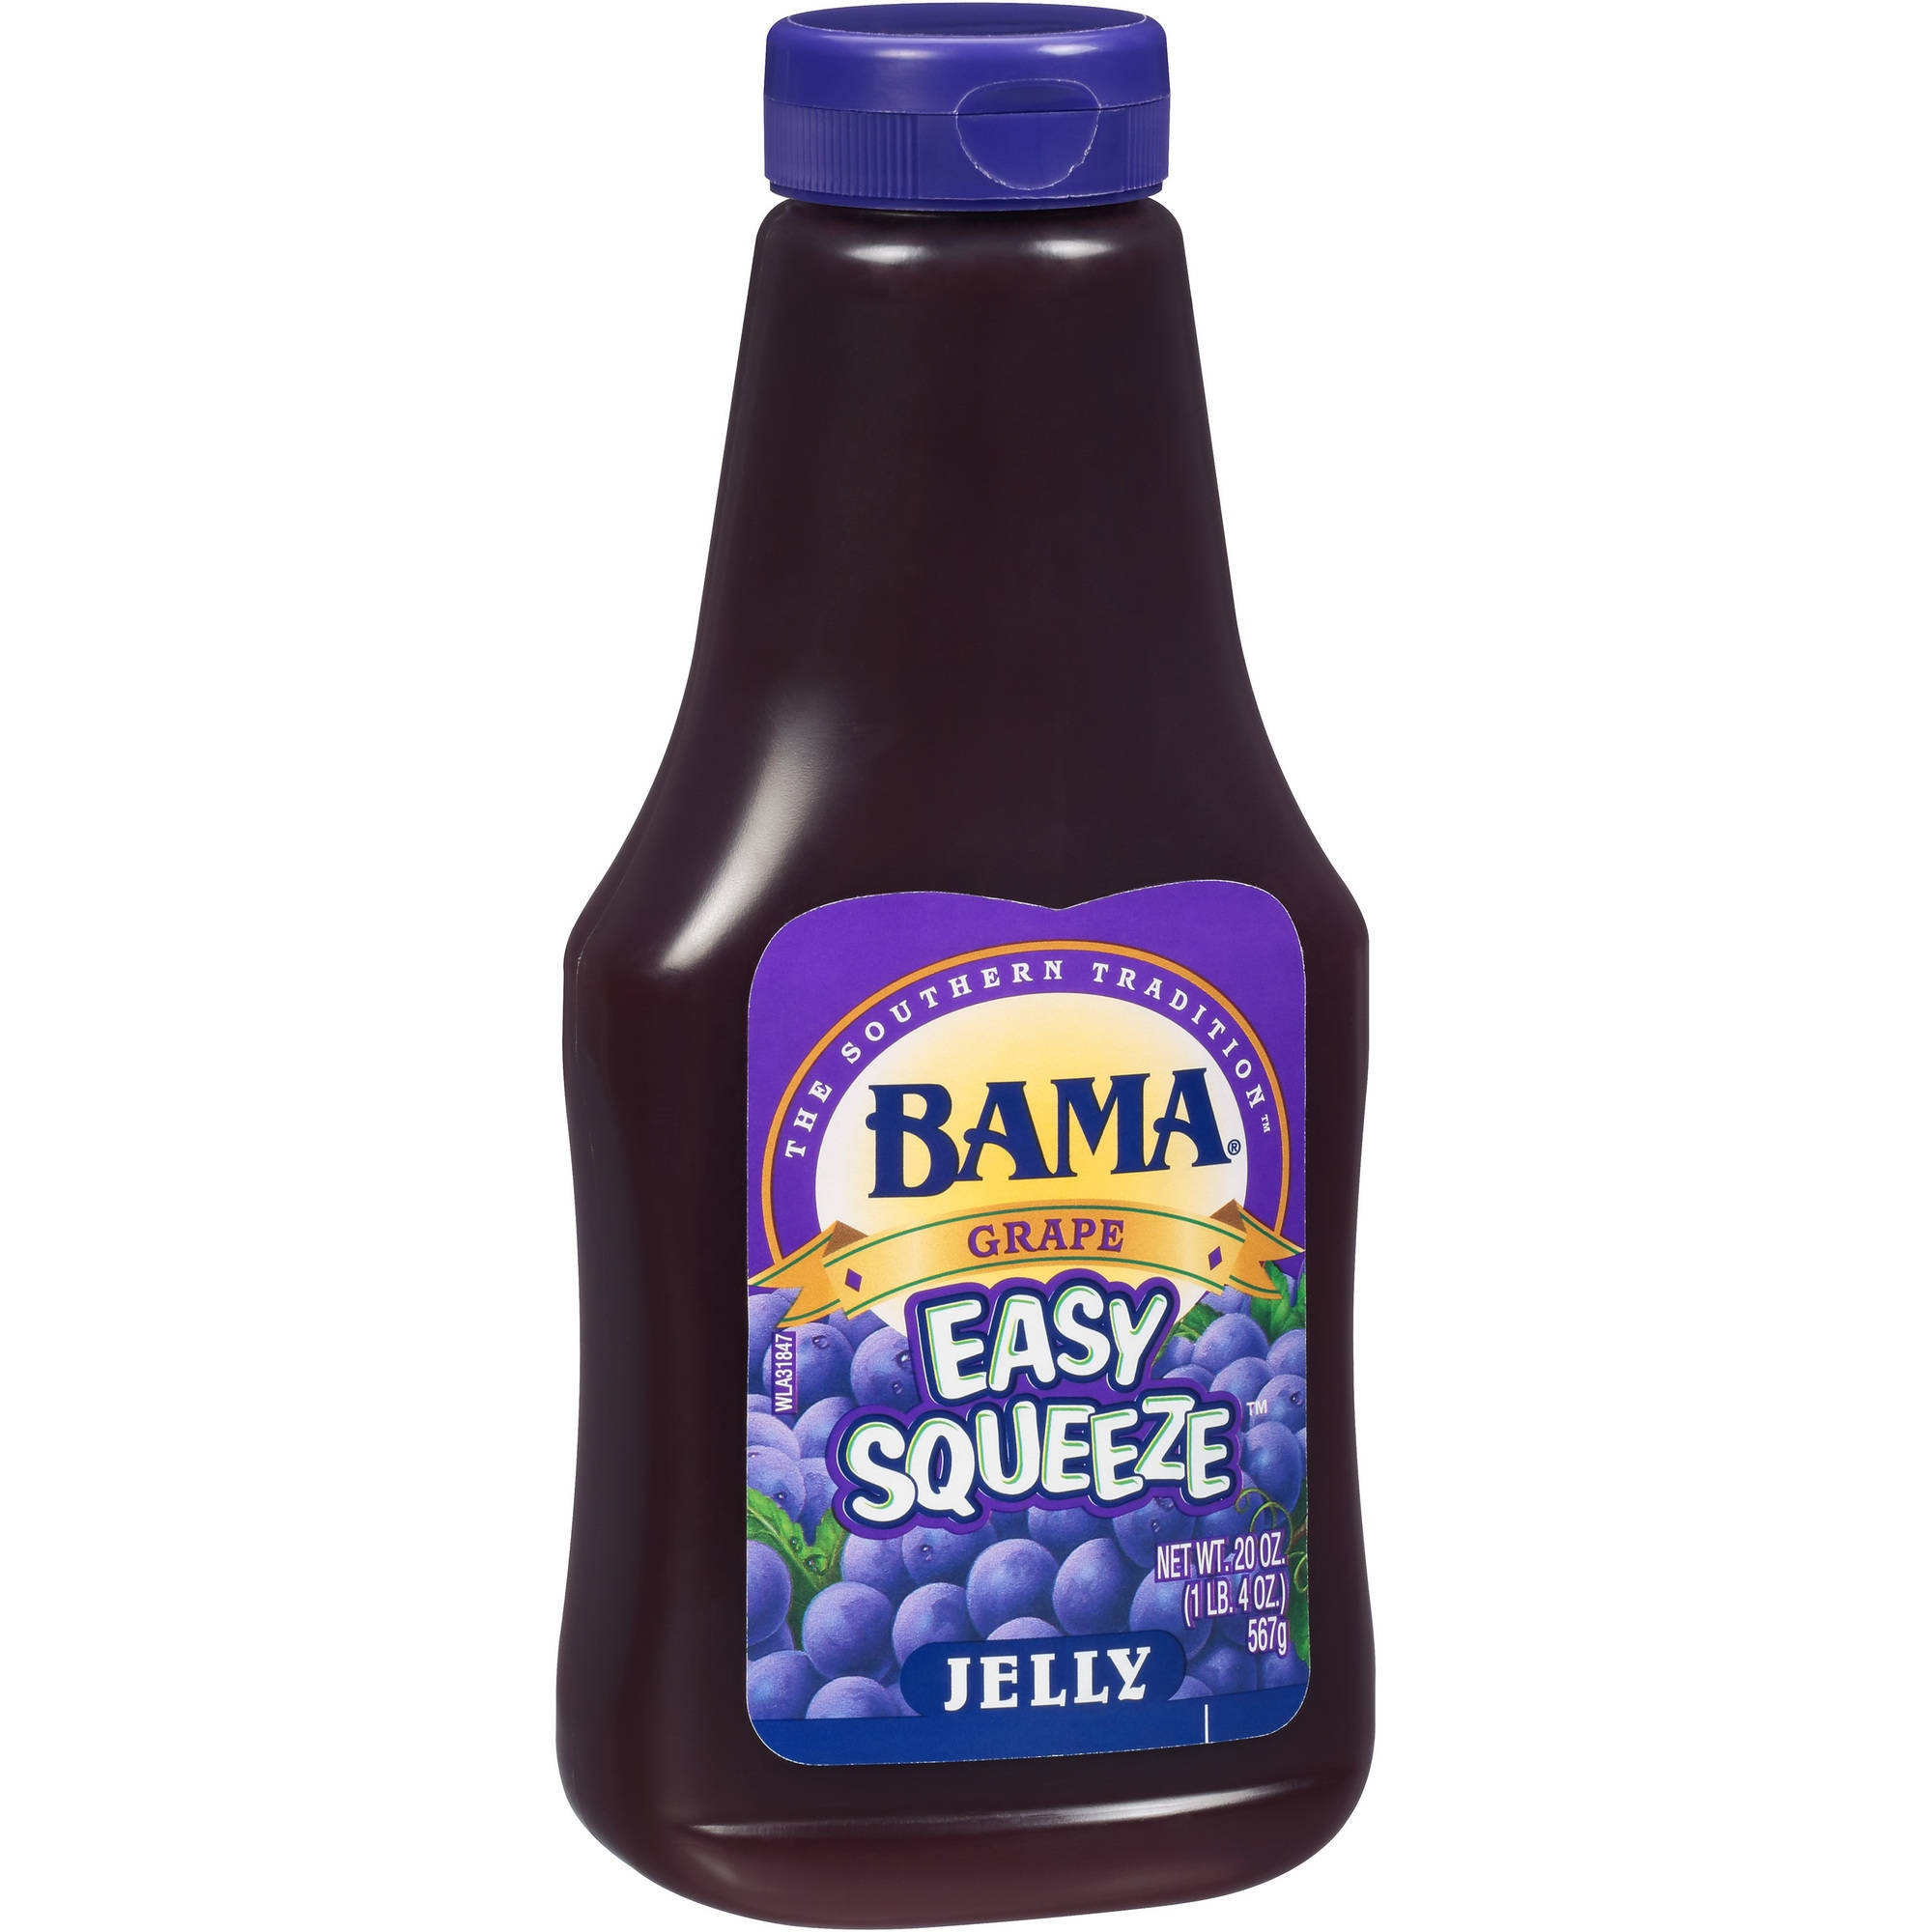 Bama Grape Jelly, 20 oz